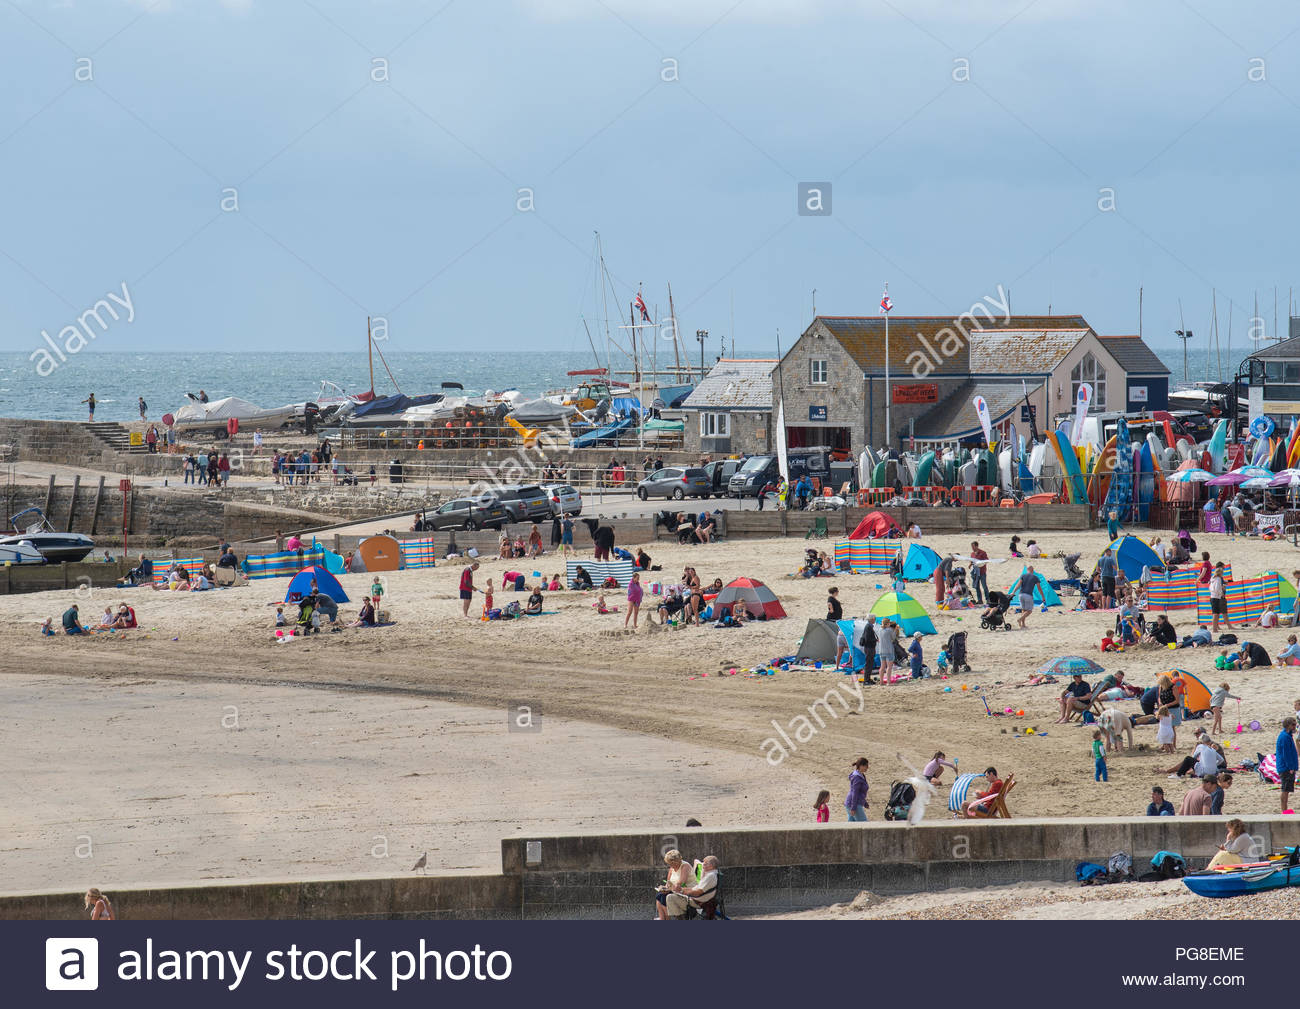 Lyme Regis, Dorset, UK. 24th August 2018.  UK Weather: Visitors enjoy bright sunny spells and a fresh breeze at the beach at Lyme Regis at the start of the Bank Holiday weekend.  Cooler, cloudier conditions are expected with some showery outbreaks. Credit: Celia McMahon/Alamy Live News - Stock Image